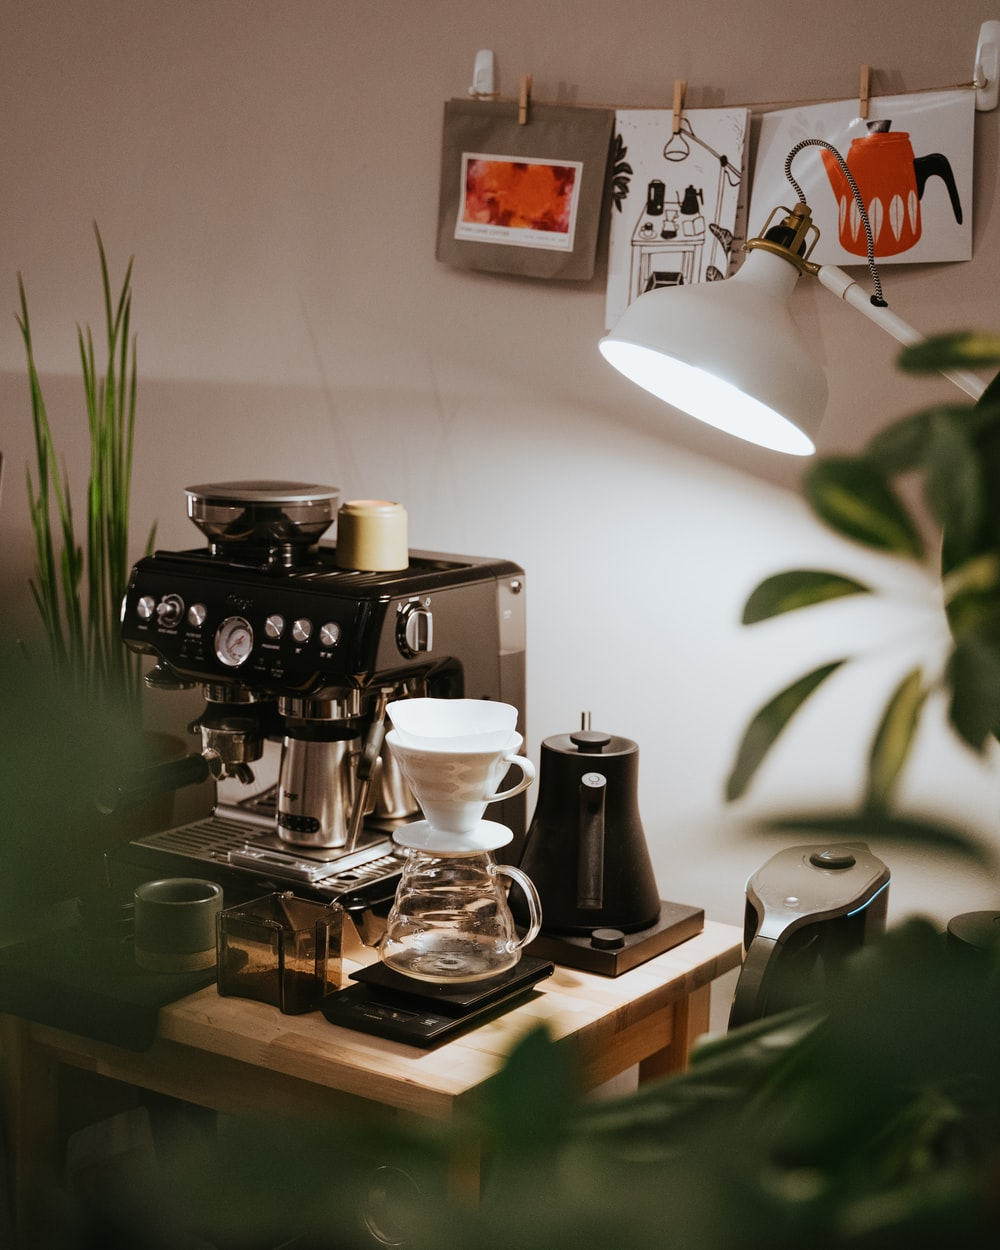 black and silver coffee maker on brown wooden table